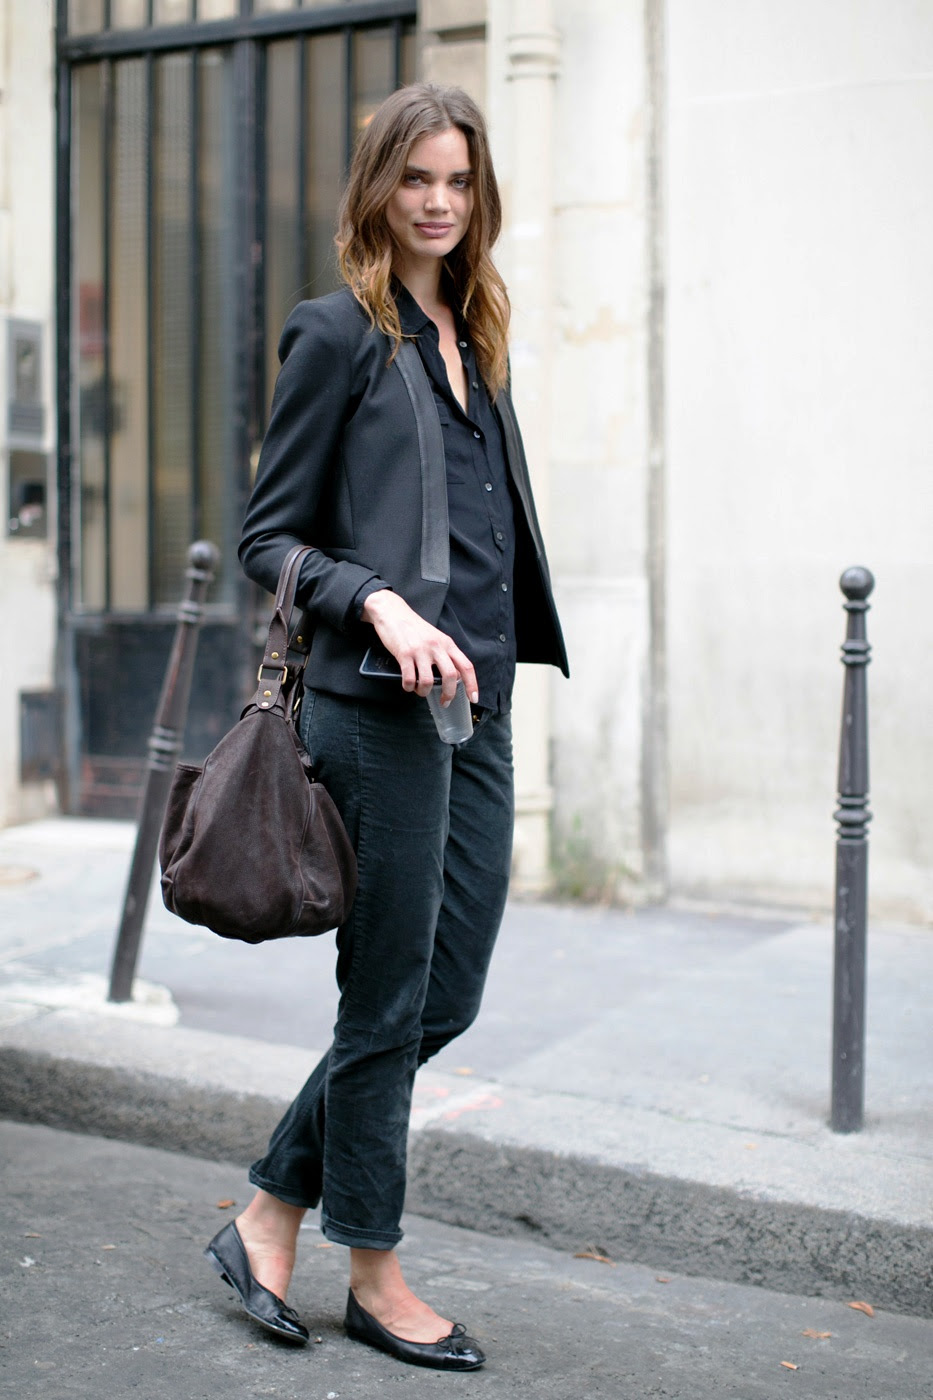 30 stylish women outfits that makes you fashionista – the